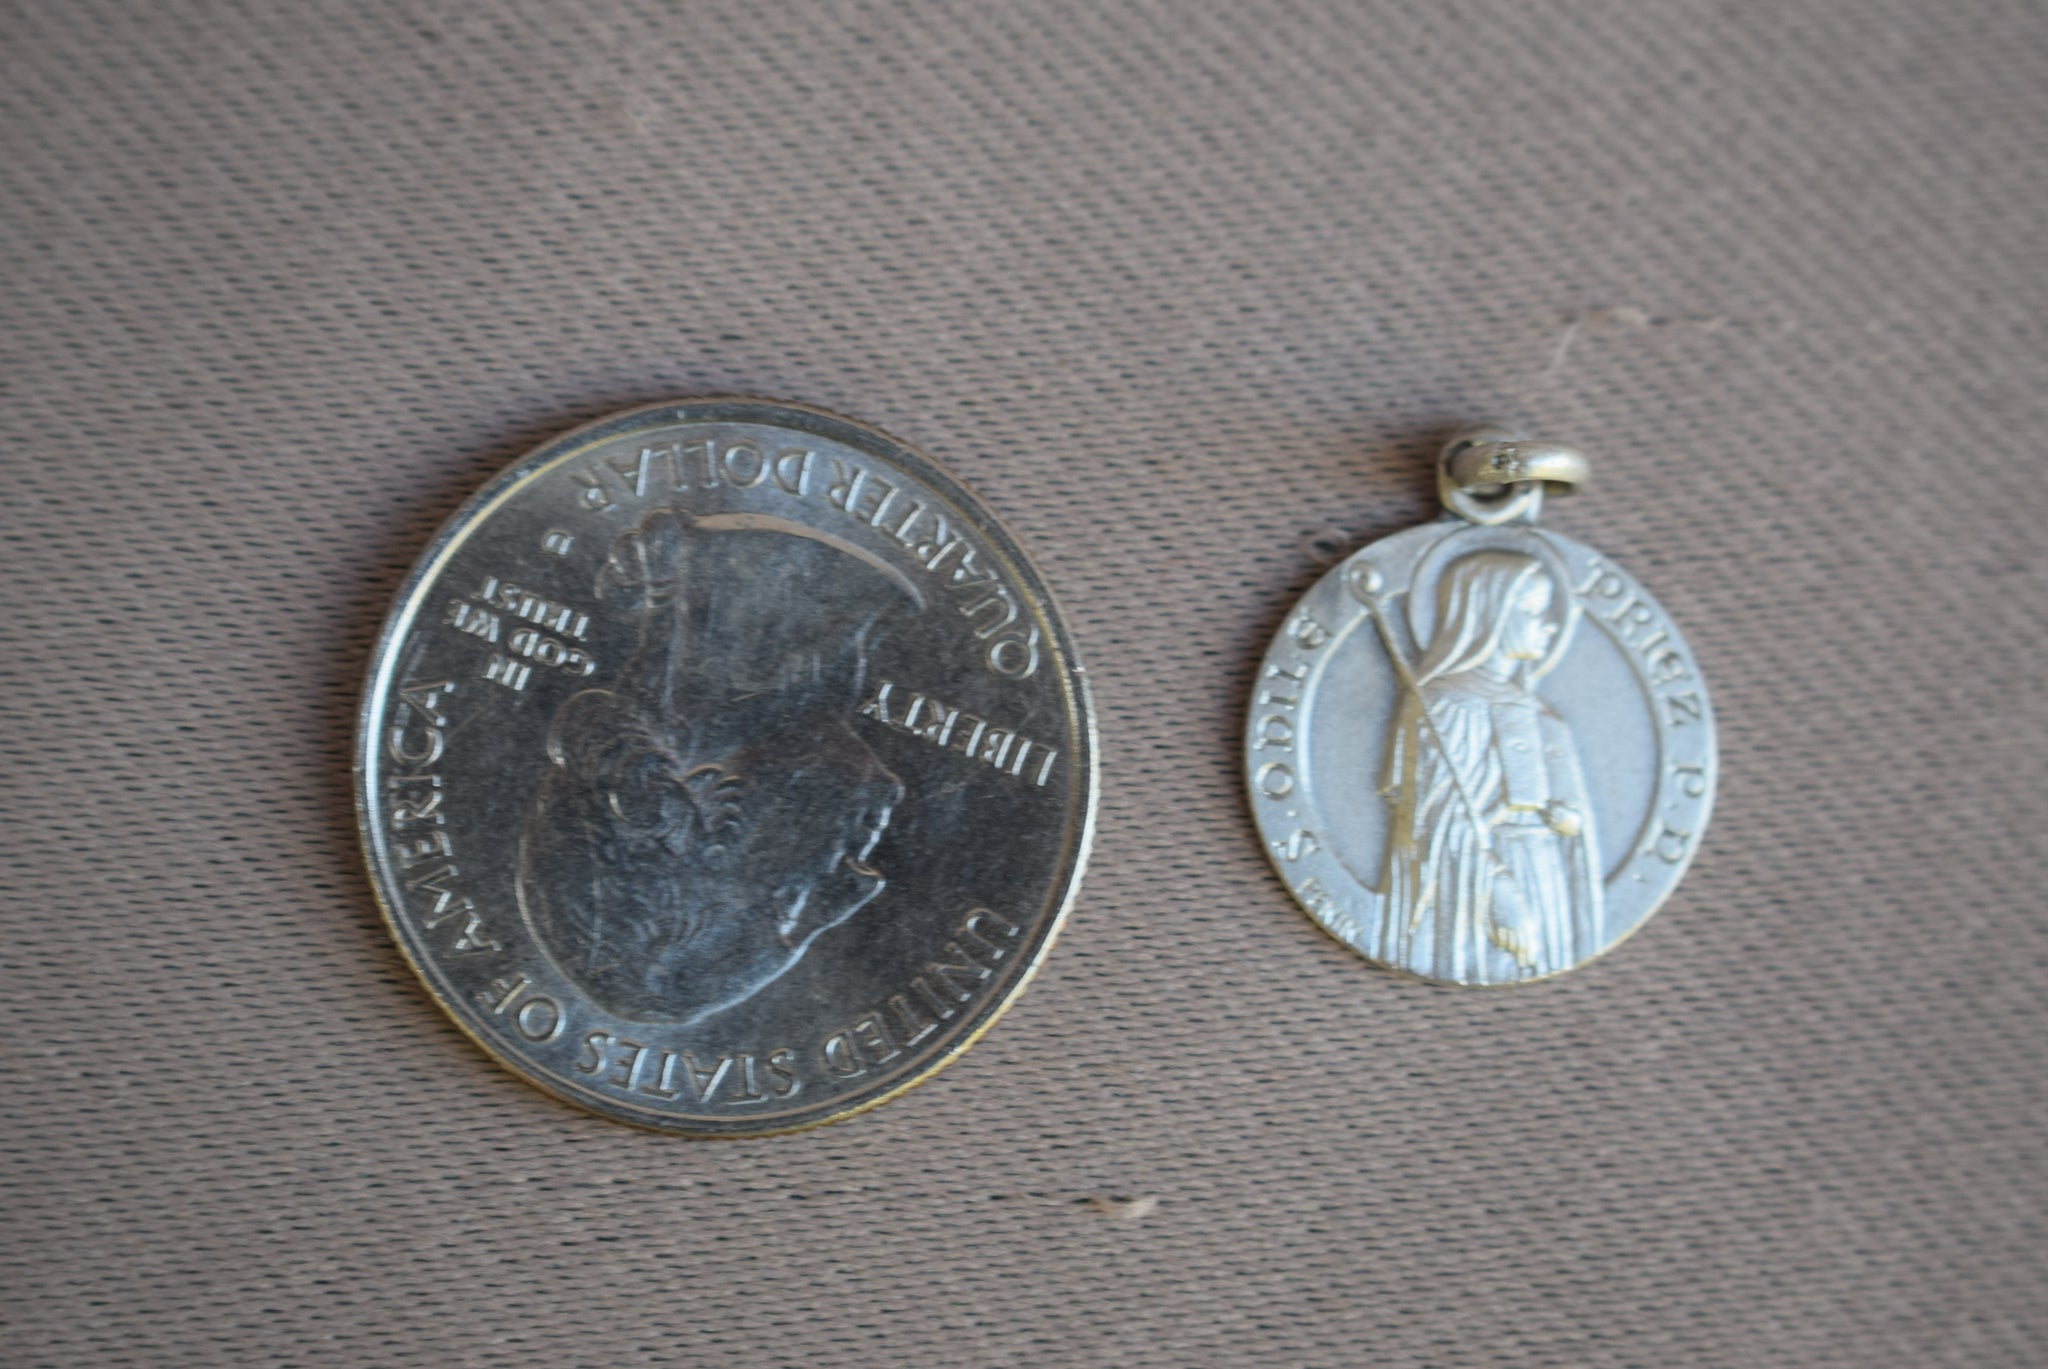 St Odile Medal Penin - Charmantiques